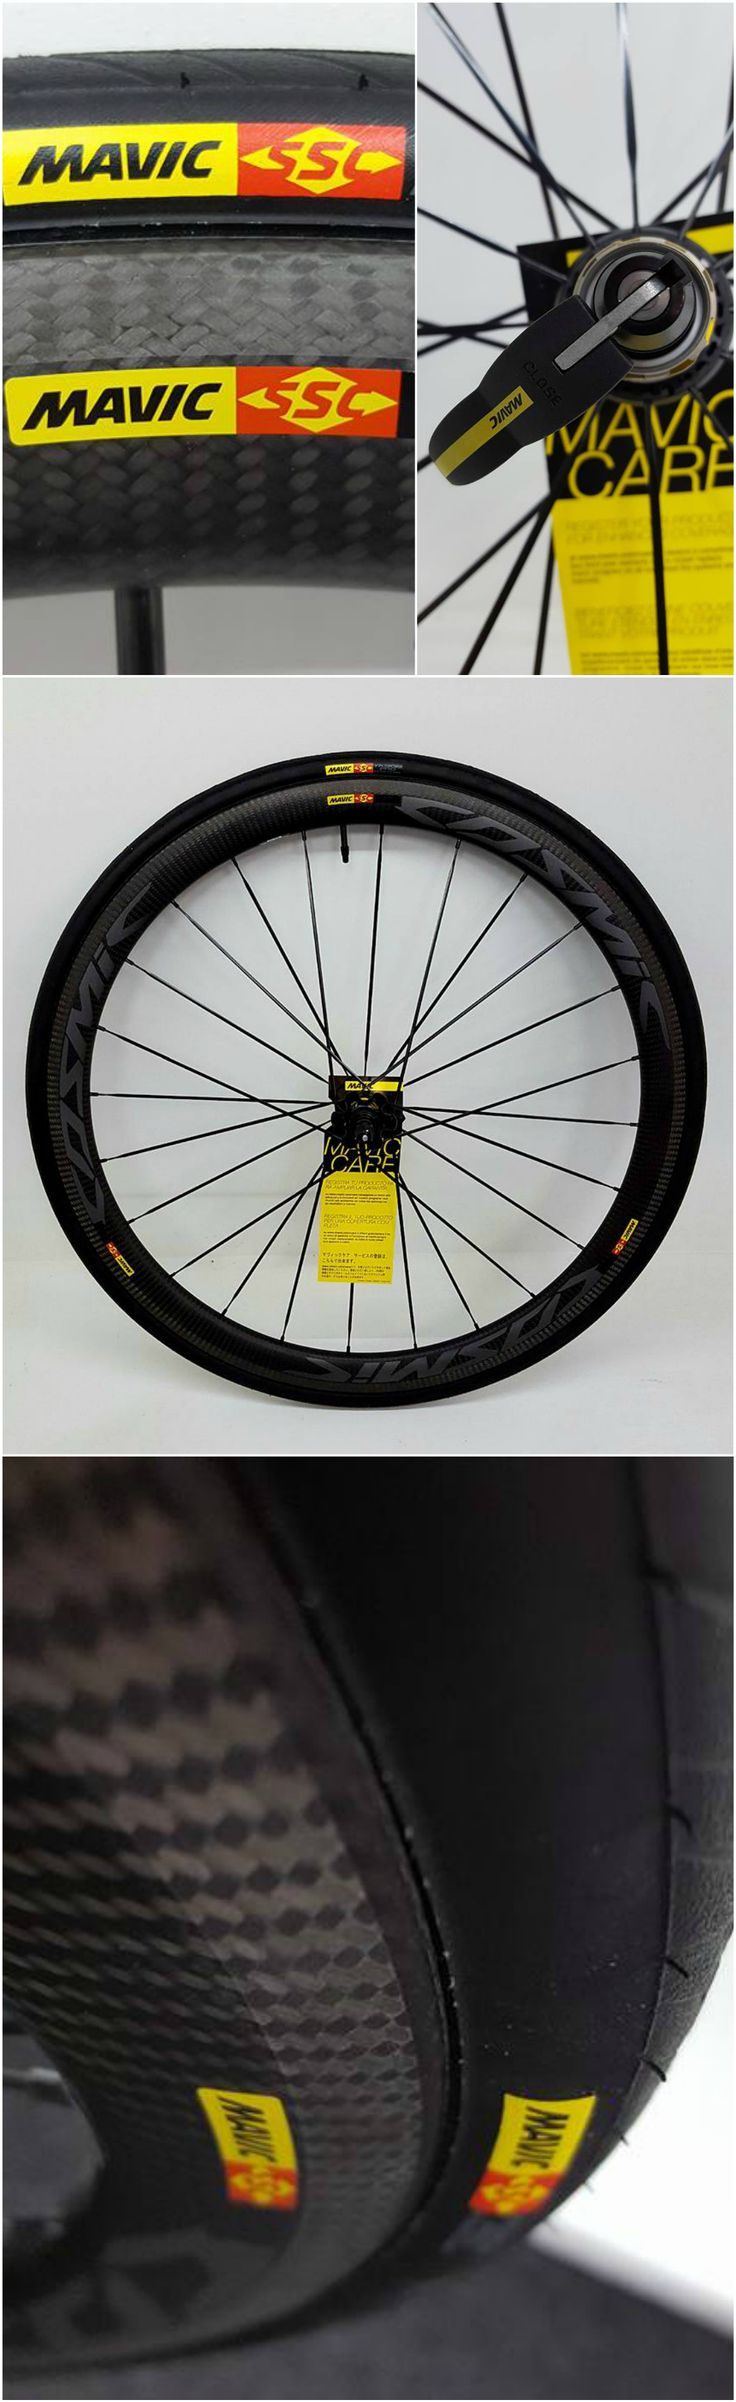 Mavic cosmic pro carbon has just won best wheel on test with a 10/10 in Cycling weekly, in stock now, free fitting and available on finance too! Perfect fast wheels for racing! #mavic #cycling #wheels #winner